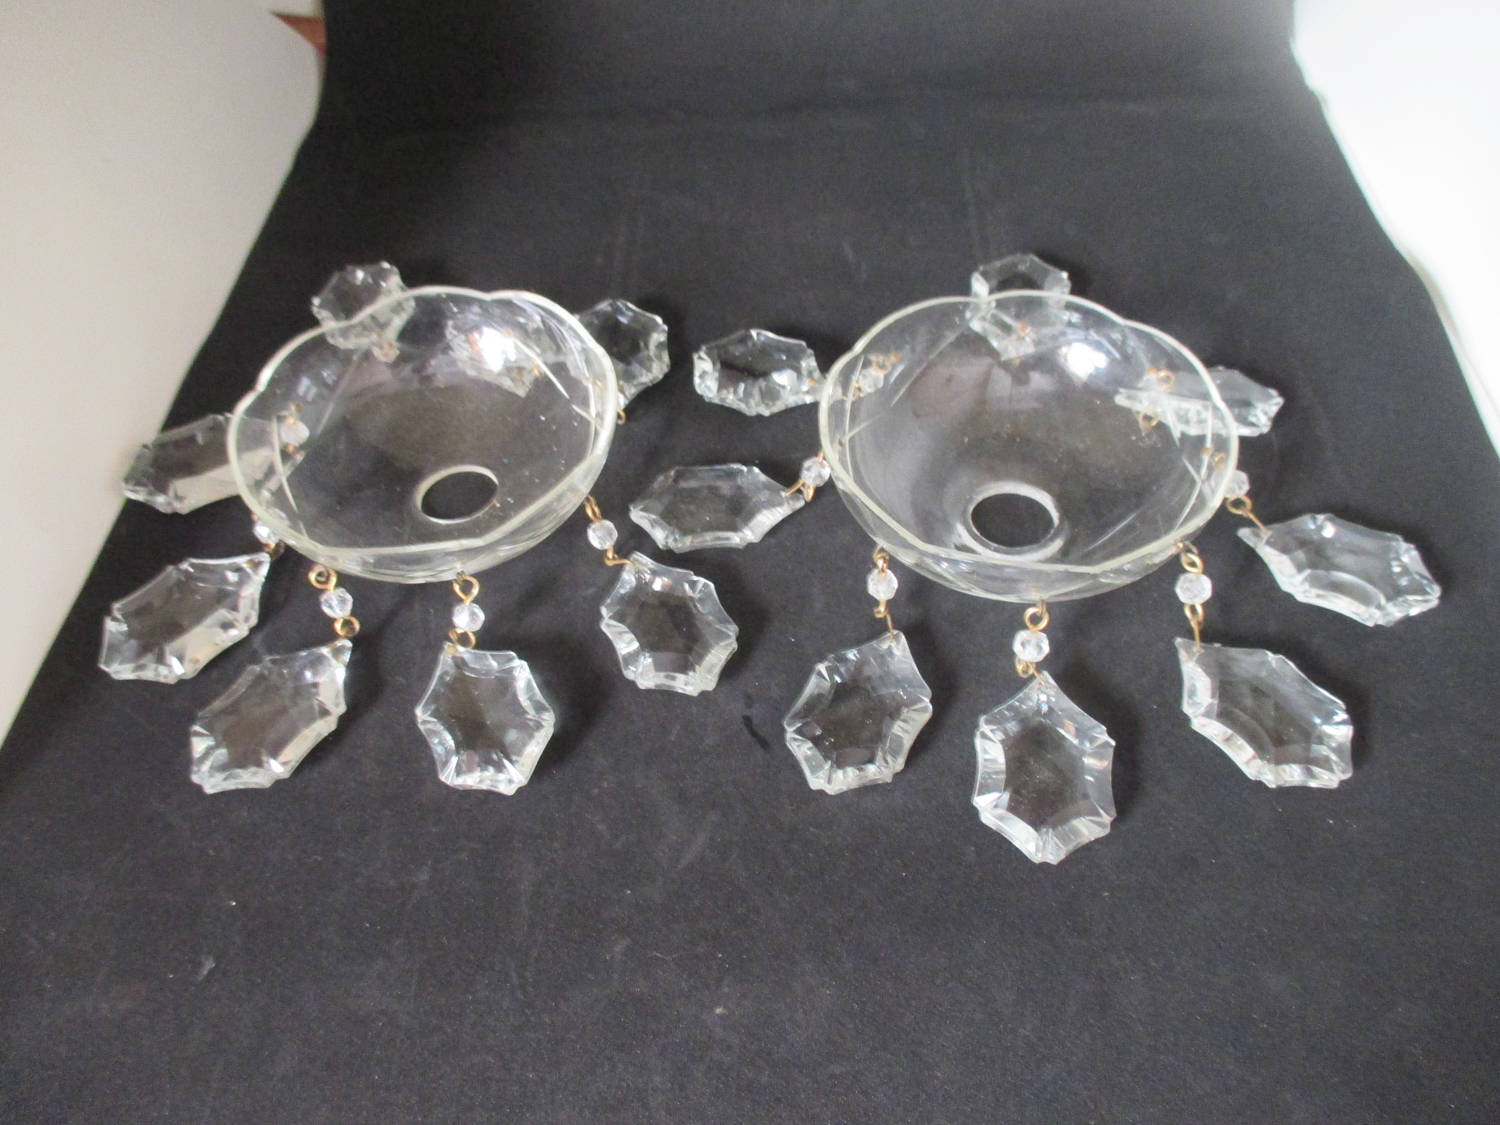 Vintage Chandelier Parts Bobeches With Crystals 2 Pieces Complete Lamp Home Decor Prisms Collectibles